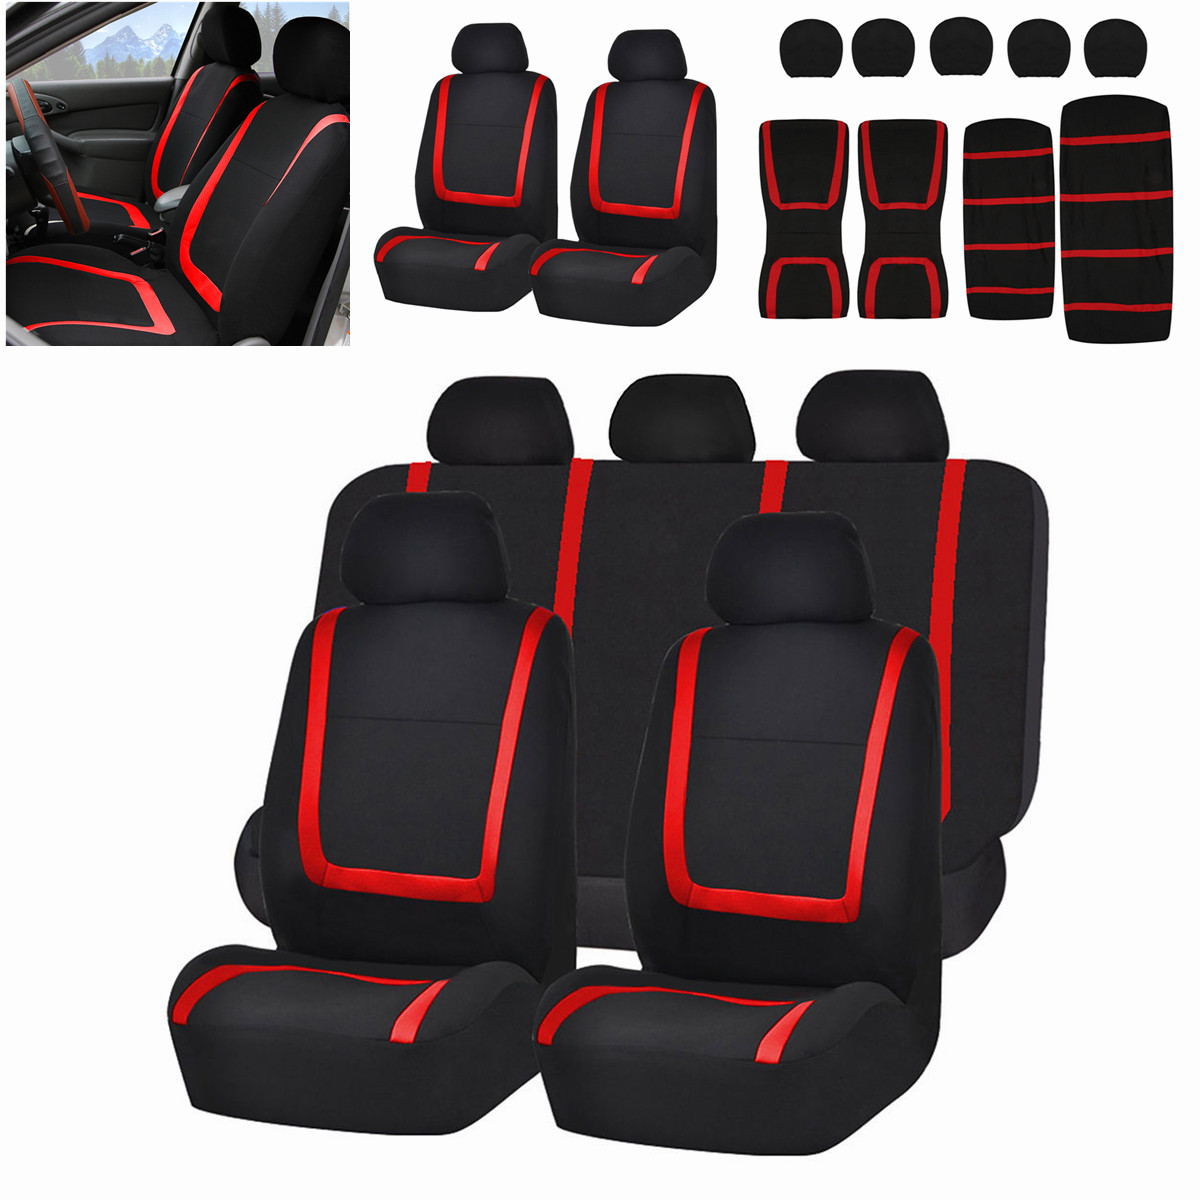 5 Heads Audew Full Set Auto Car Seat Covers Polyester Protector Front&Rear Vehicle Seat Covers Automobile Seat Protection Cover